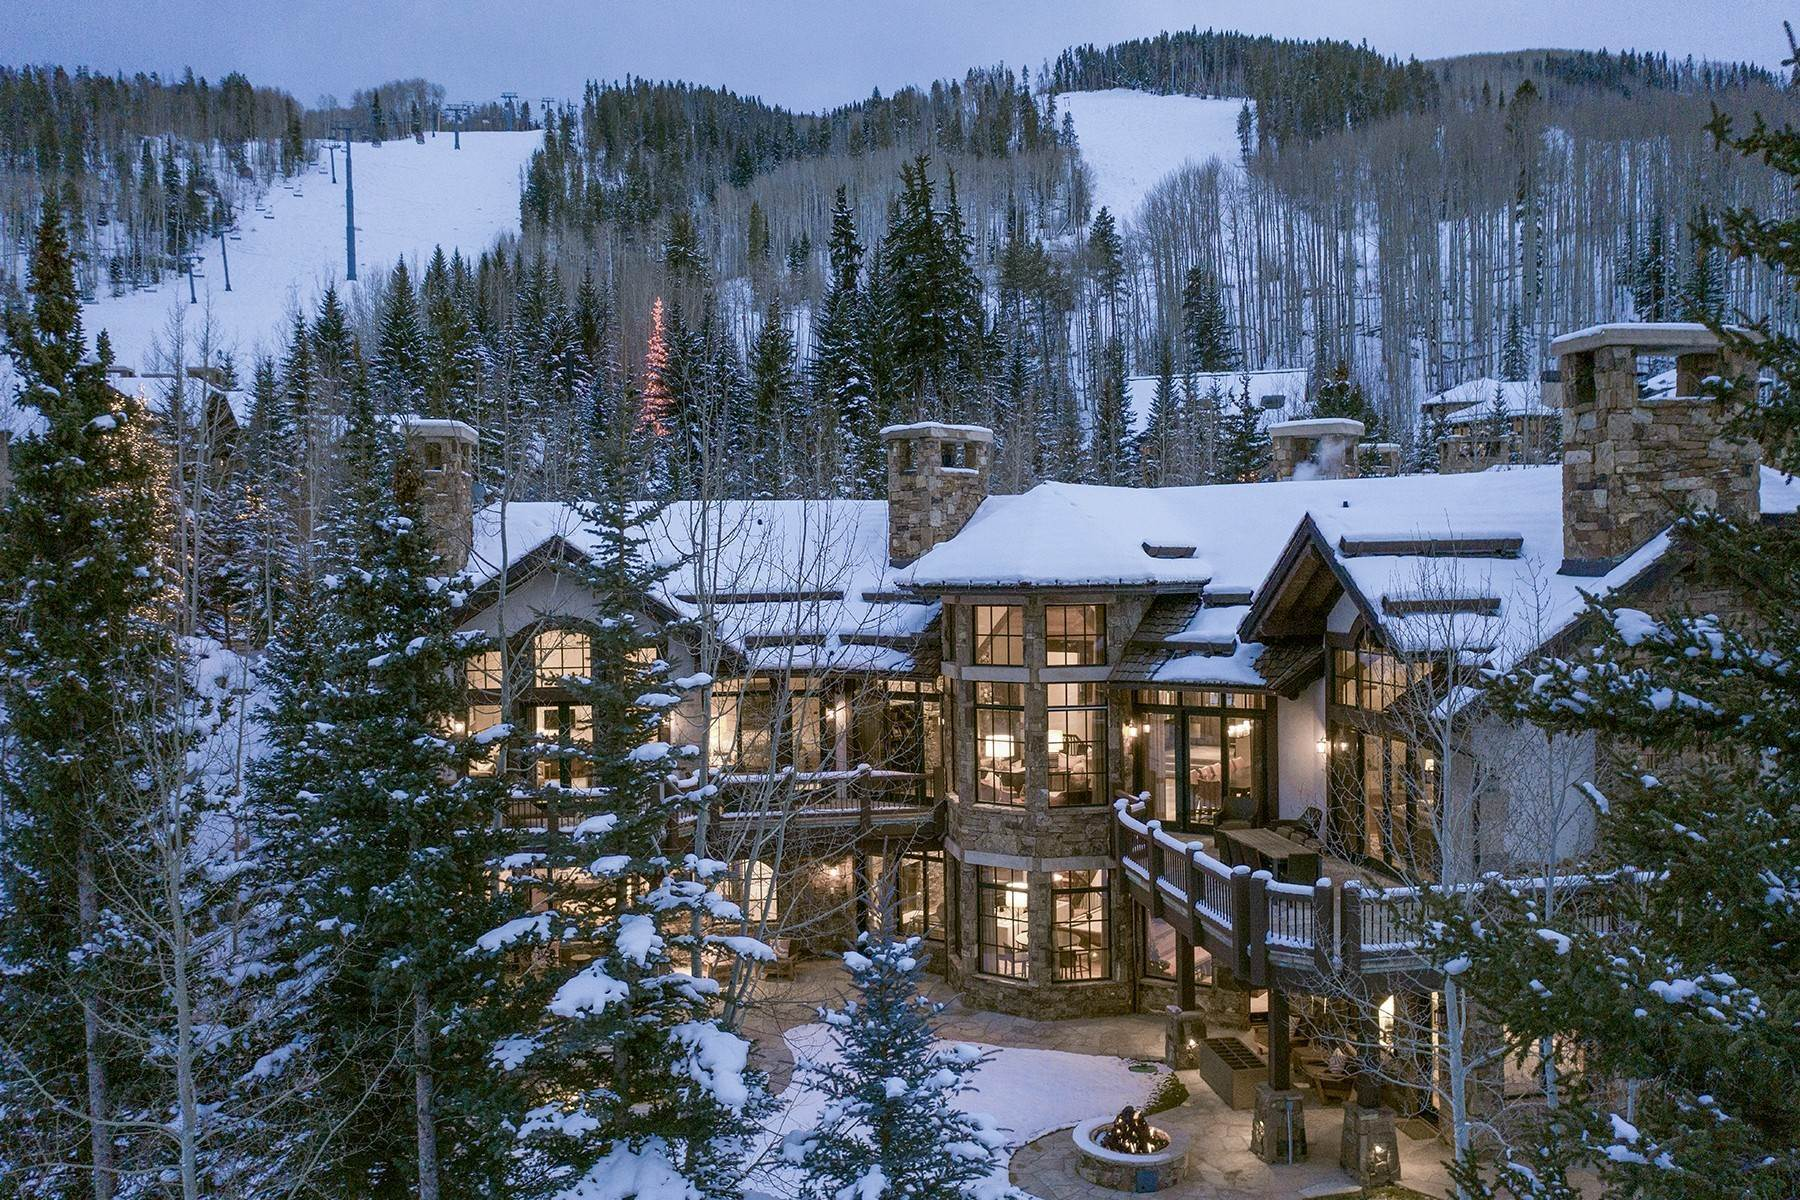 Single Family Homes for Active at Coveted Ski-In/Ski-Out in Vail 615 Forest Place Vail, Colorado 81657 United States